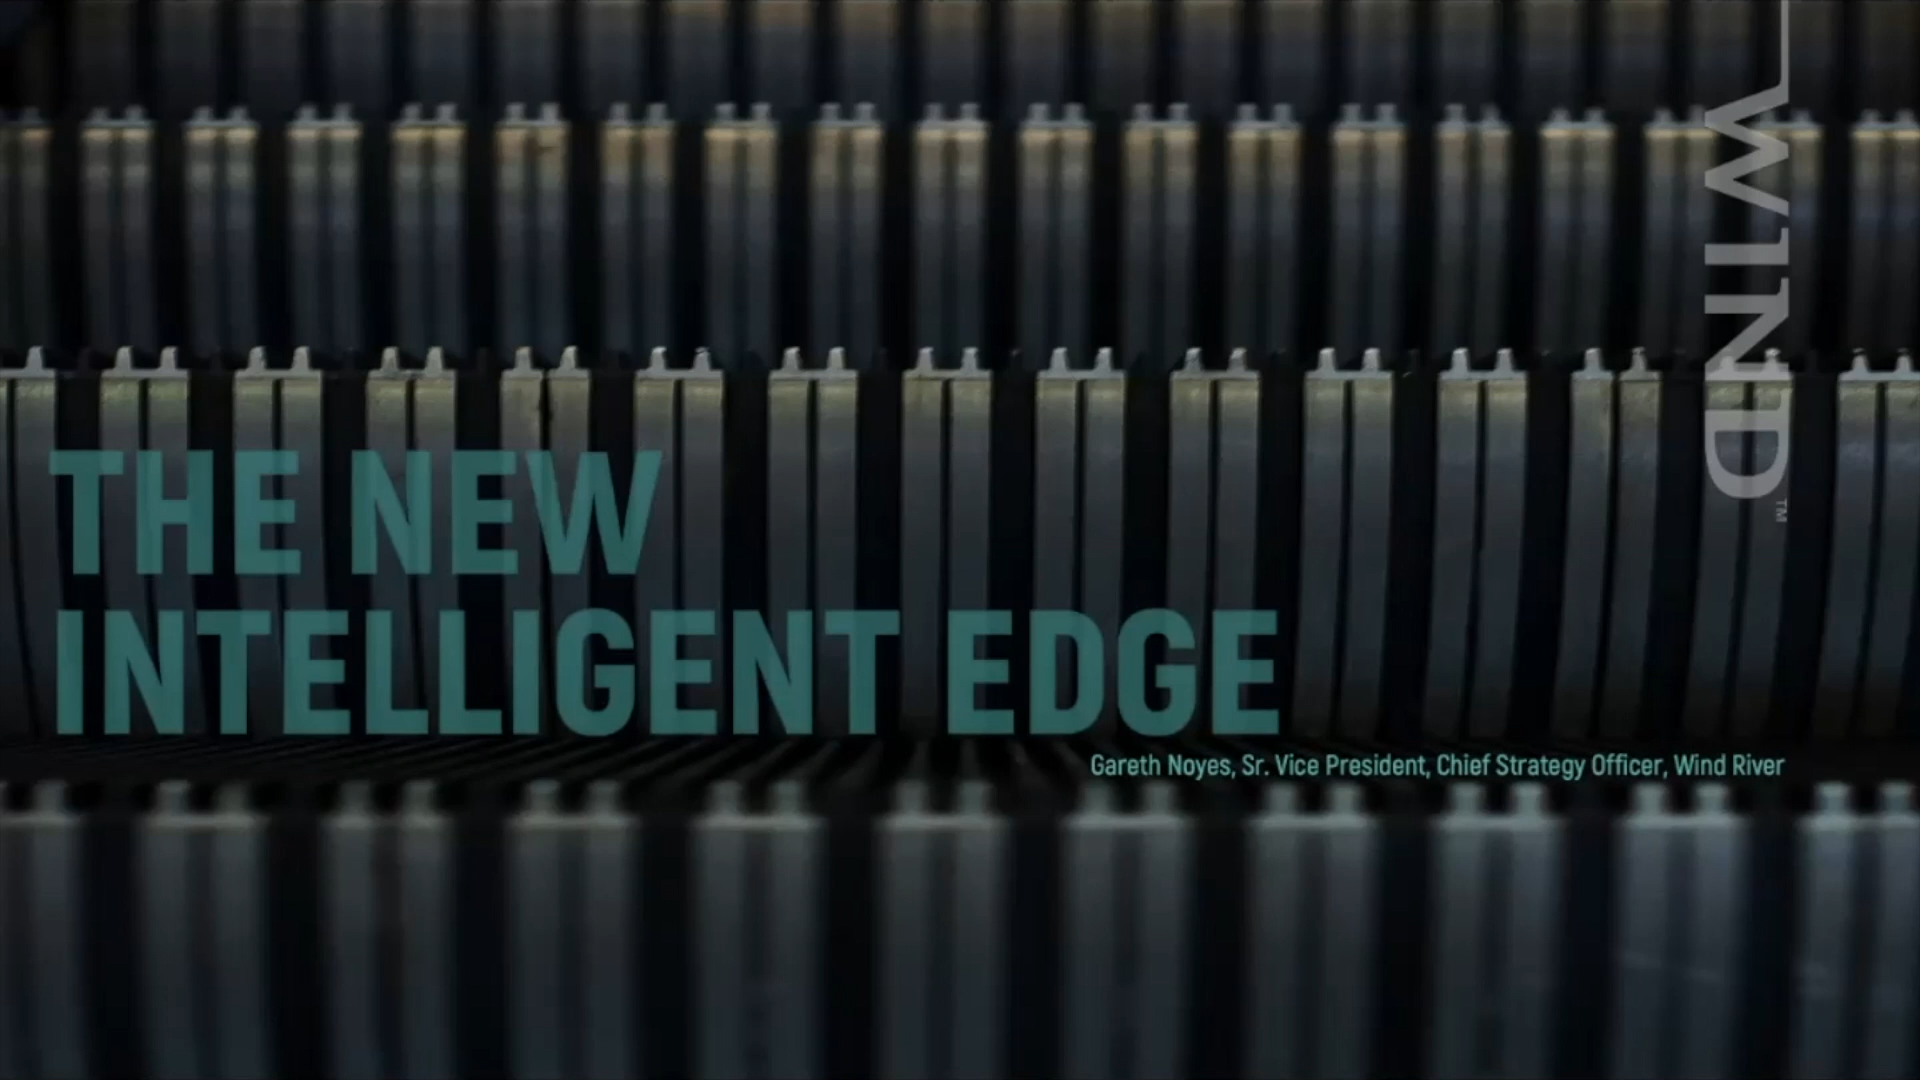 The new intelligent edge – video